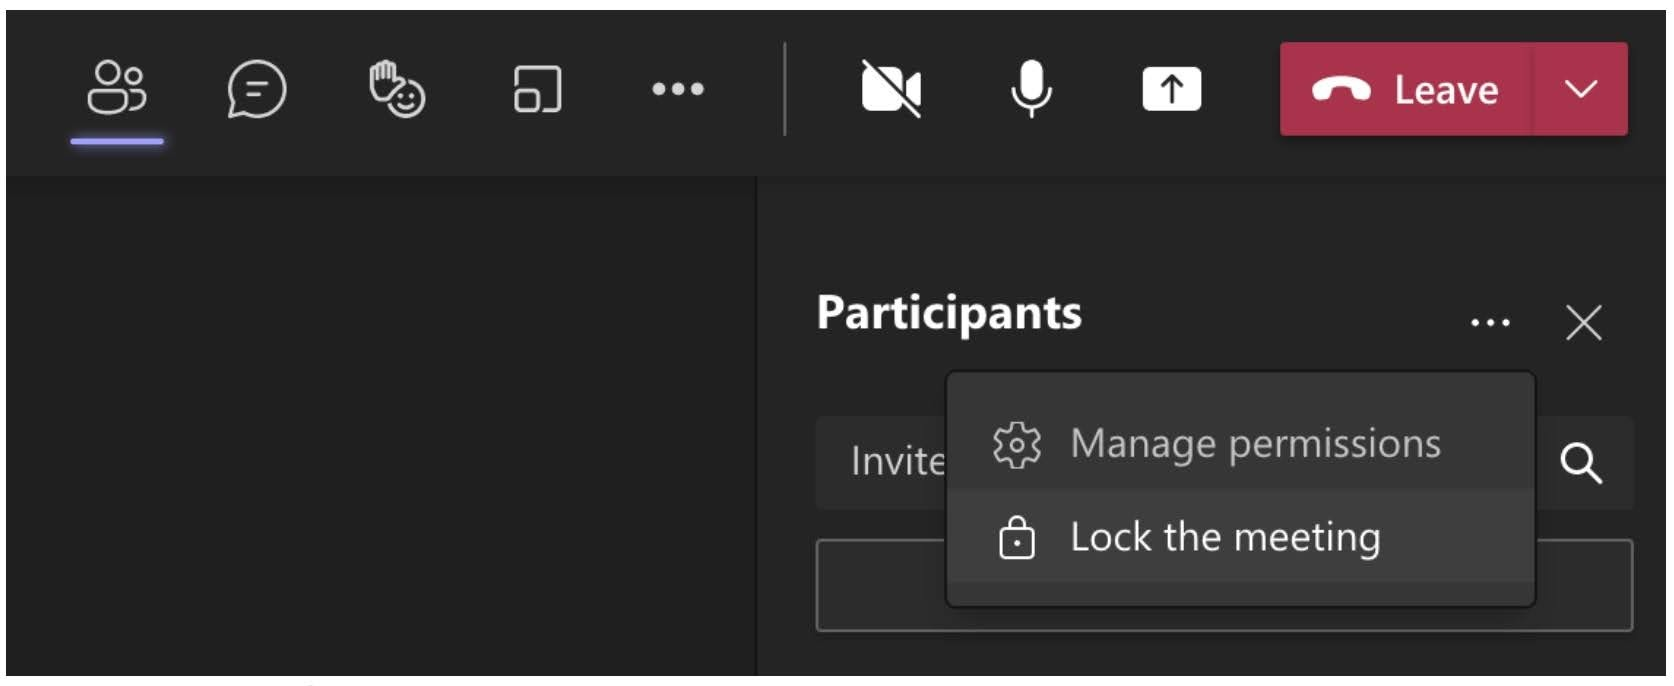 When the change has rolled out meeting organizers will have the option to Lock the meeting.